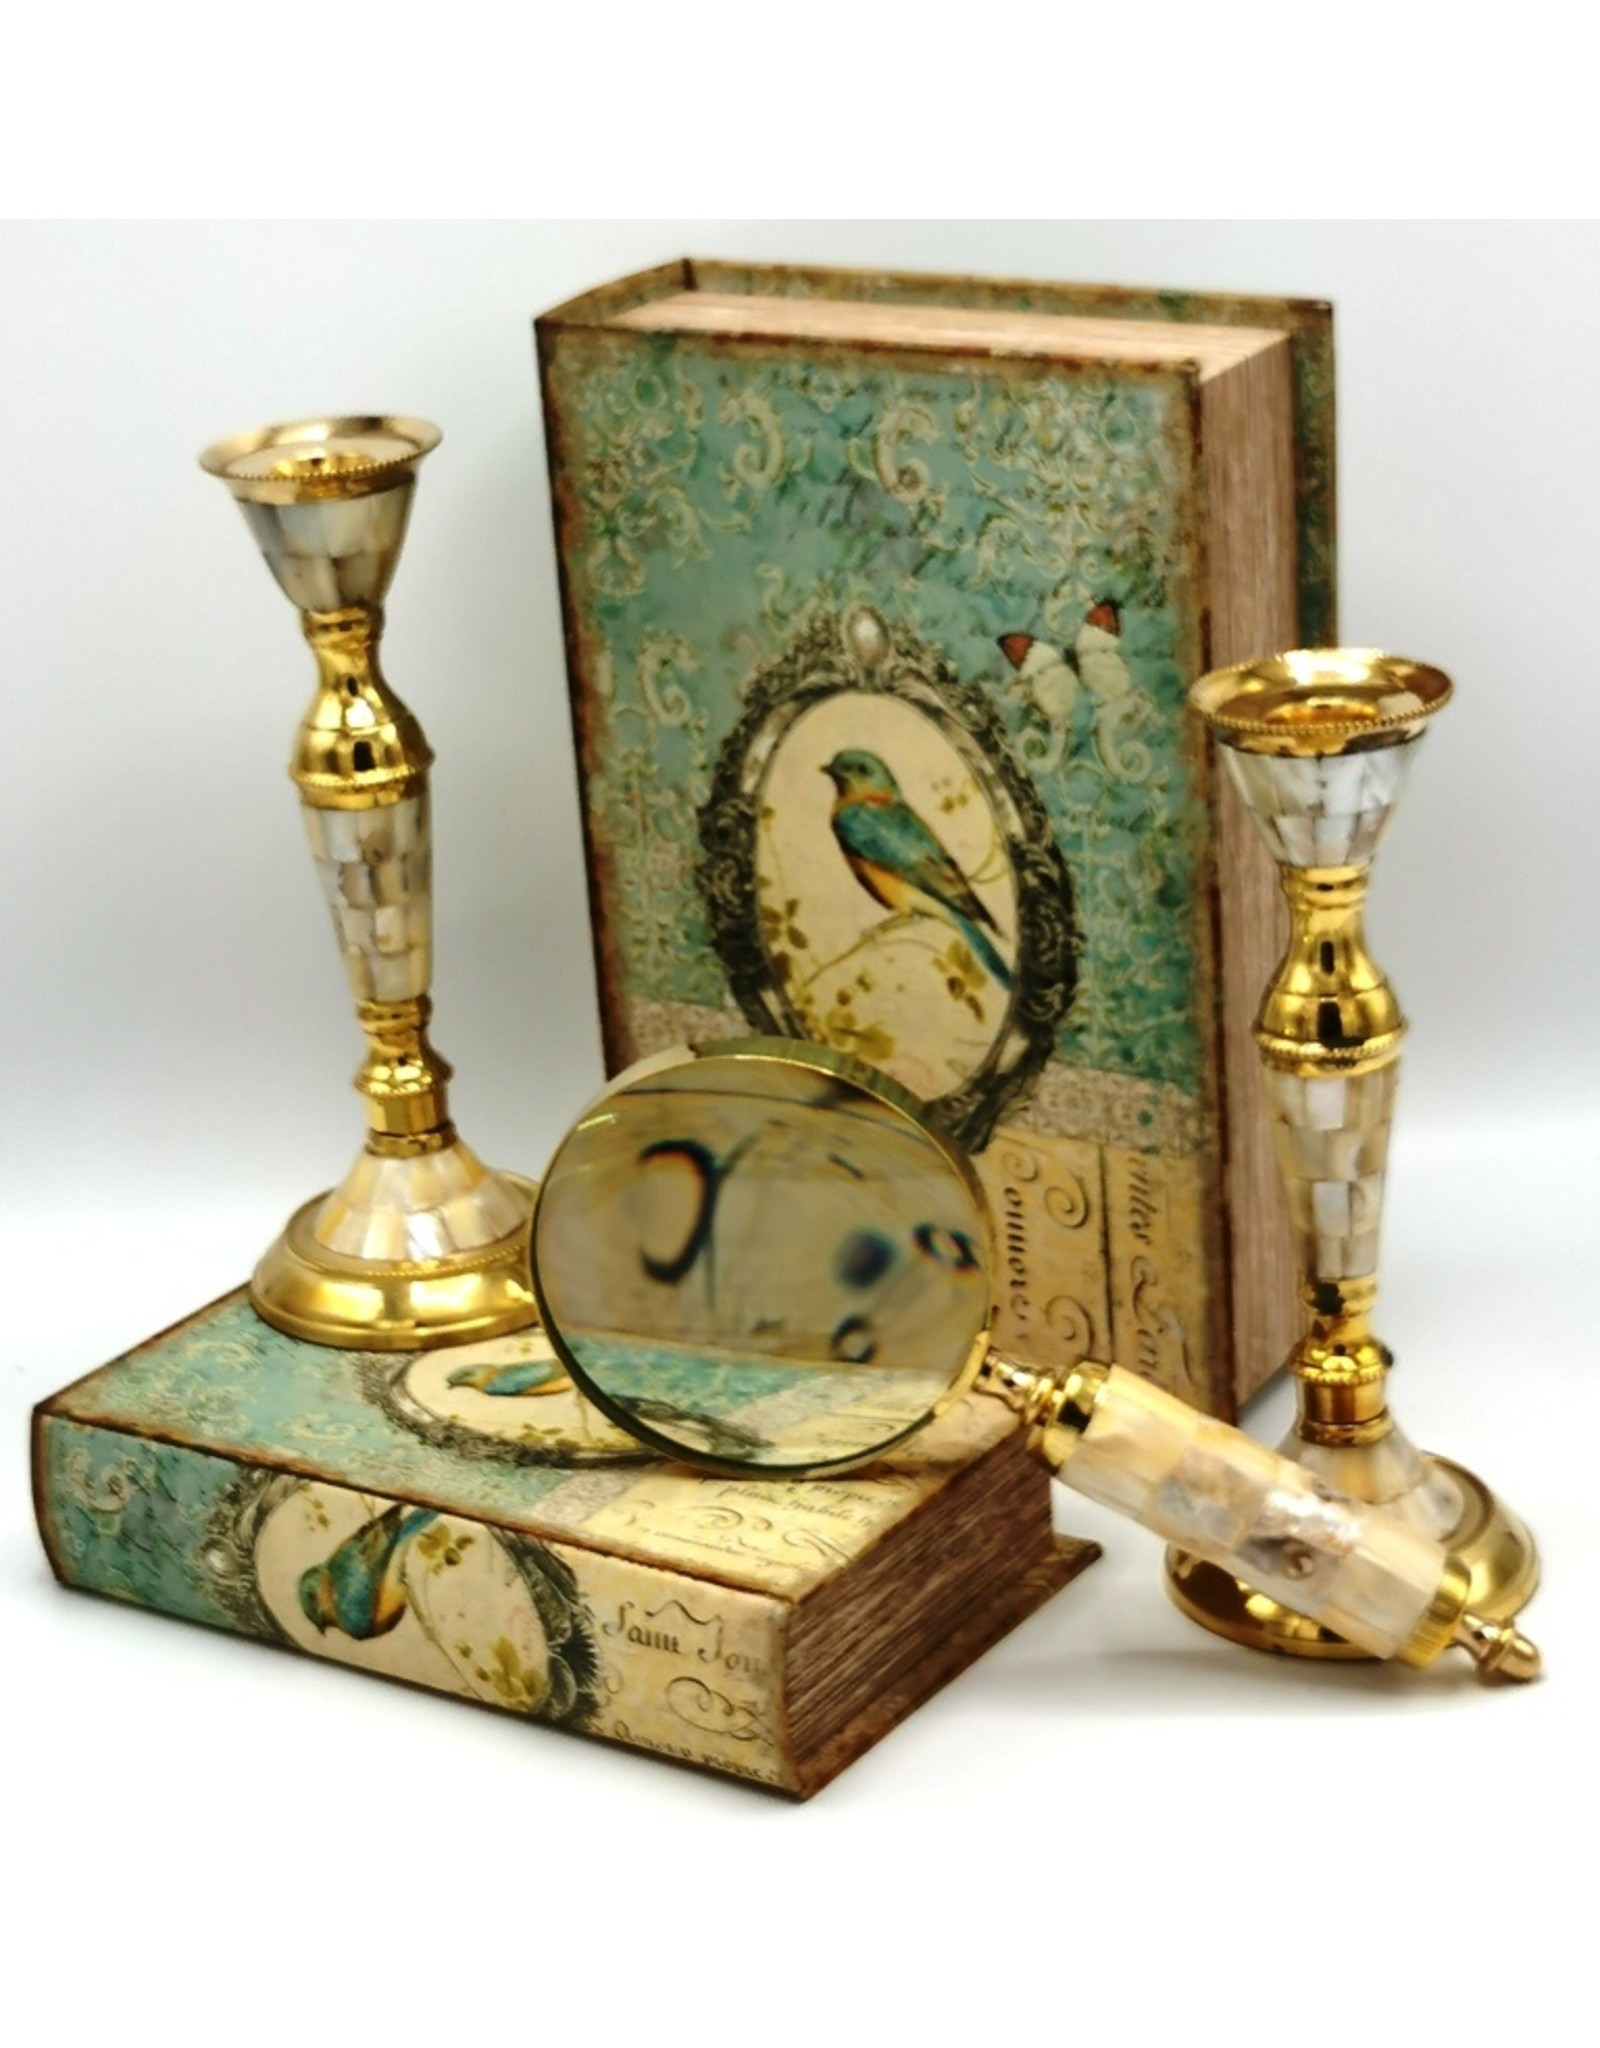 Trukado Miscellaneous - Antiquek look candlestick of brass and mother-of-pearl, set of 2 pcs